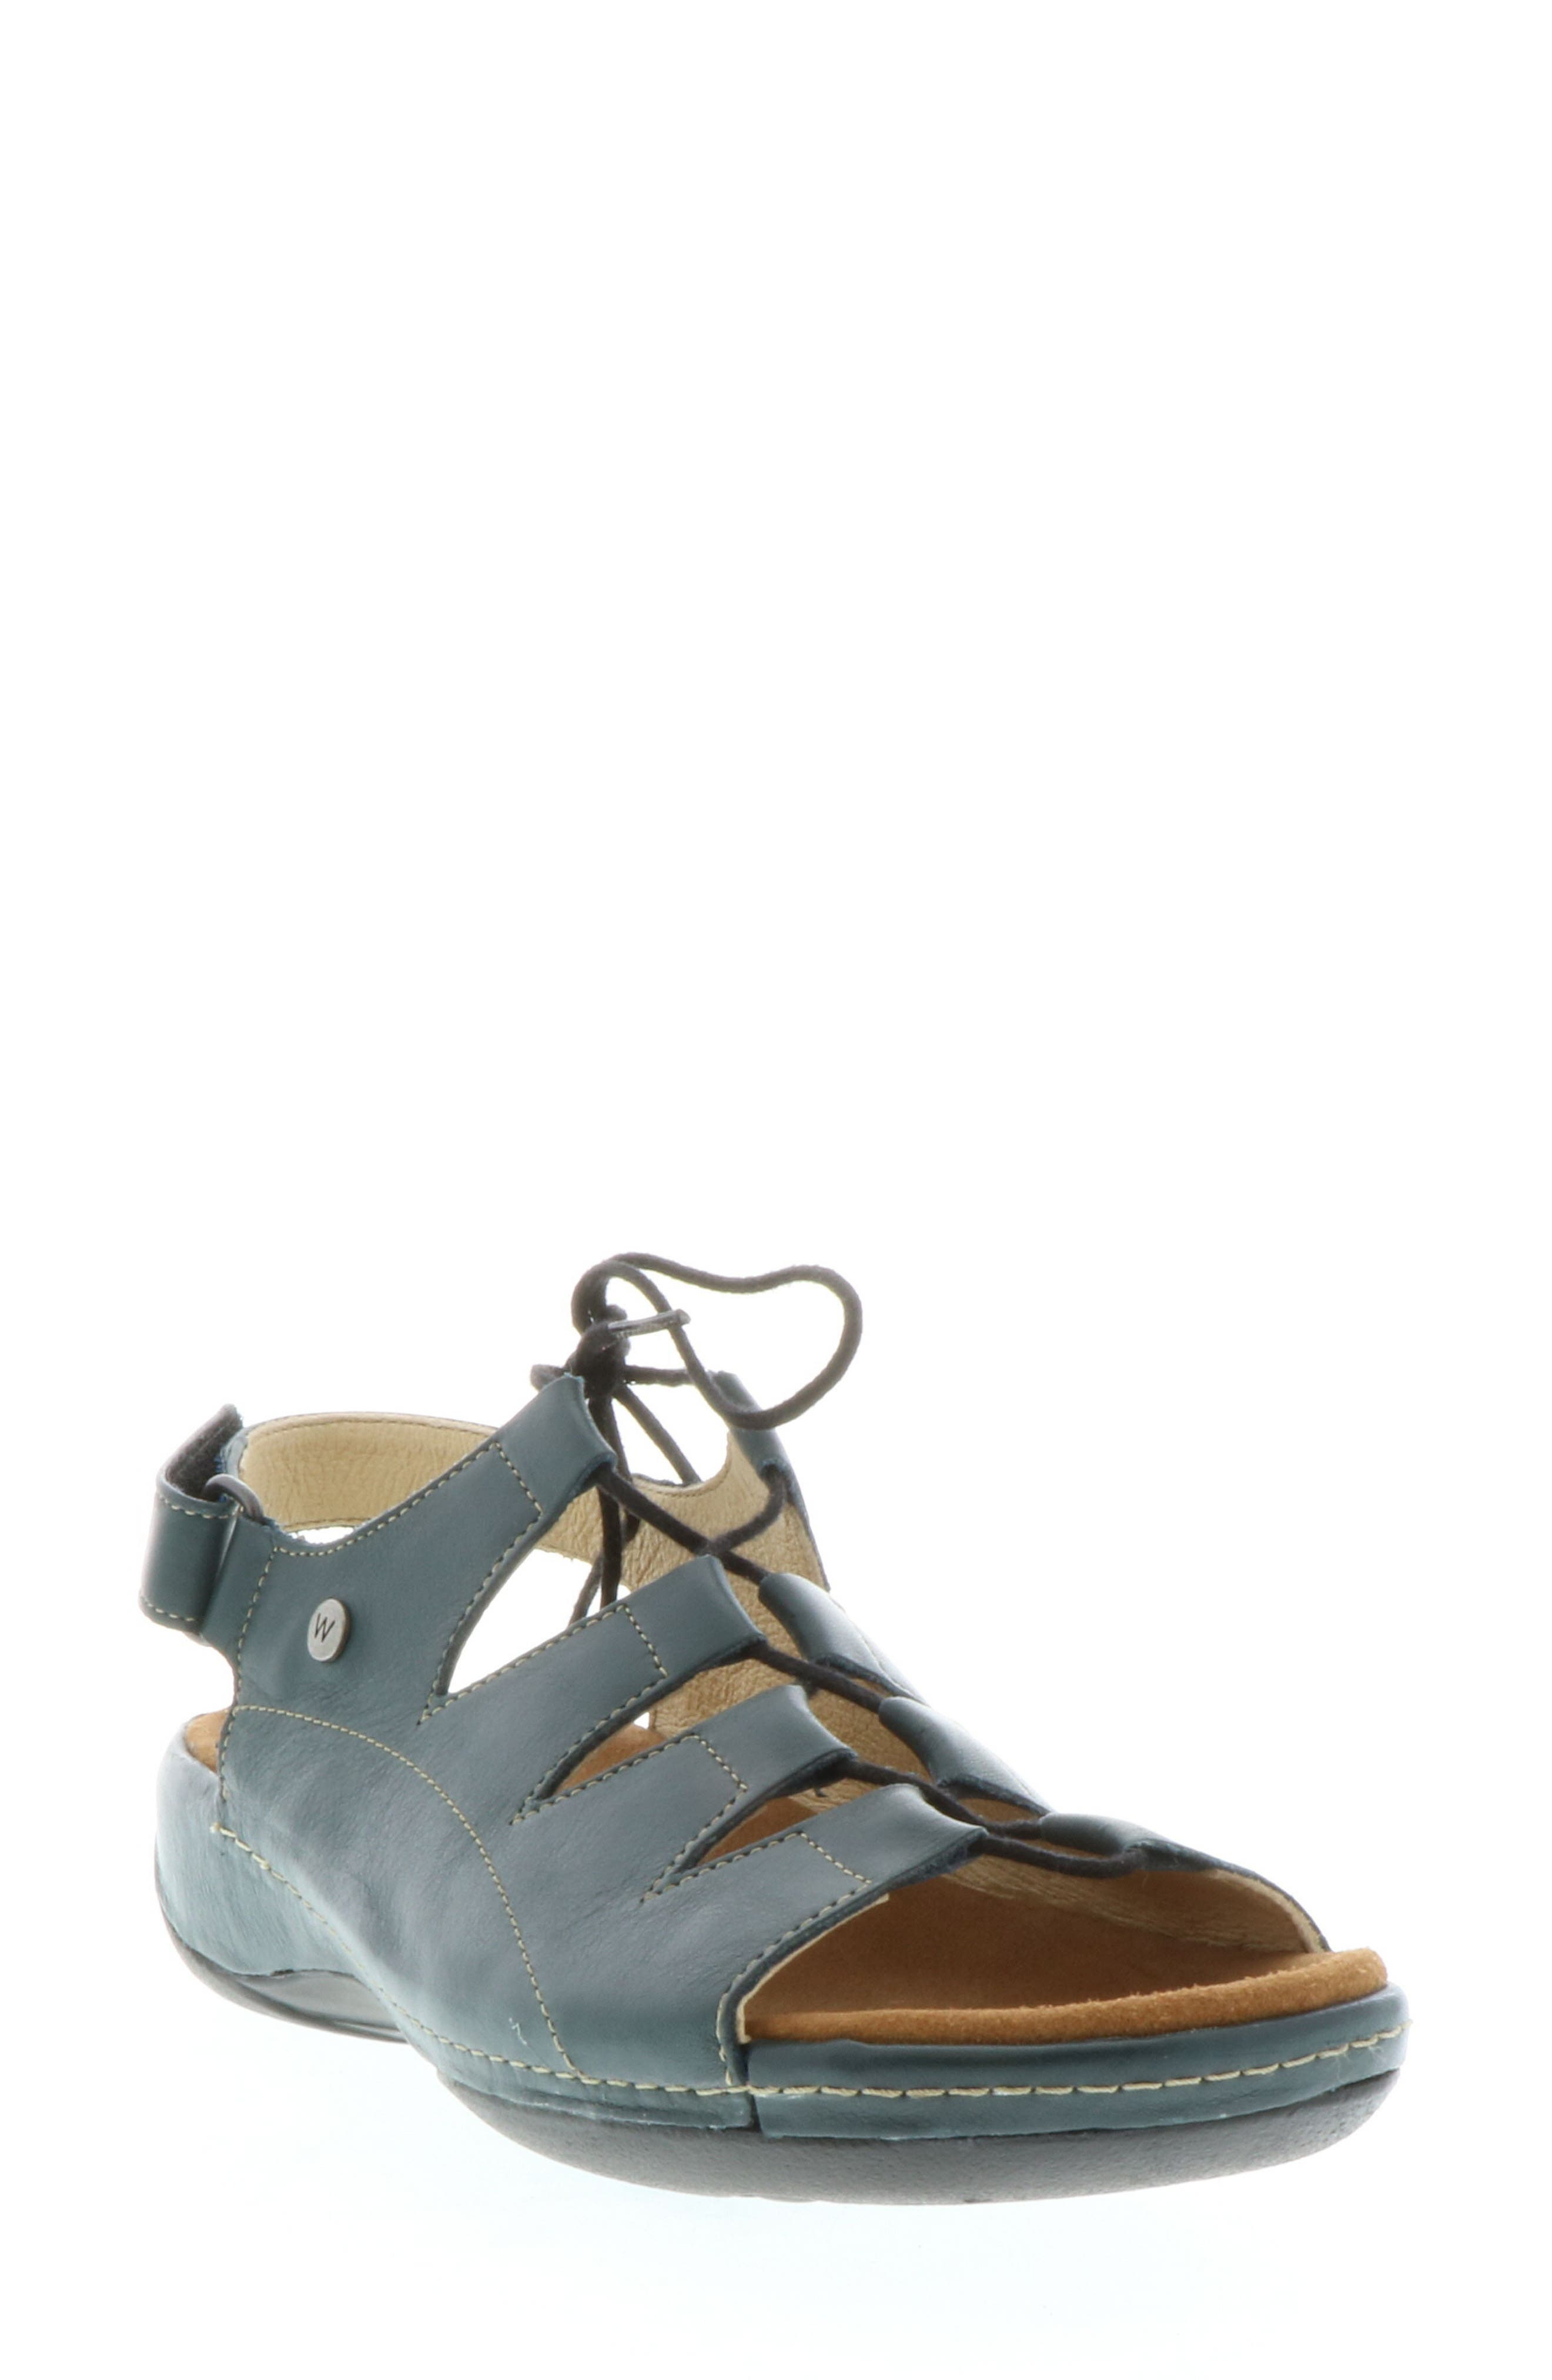 Kite Lace-Up Sandal,                         Main,                         color, Navy Leather